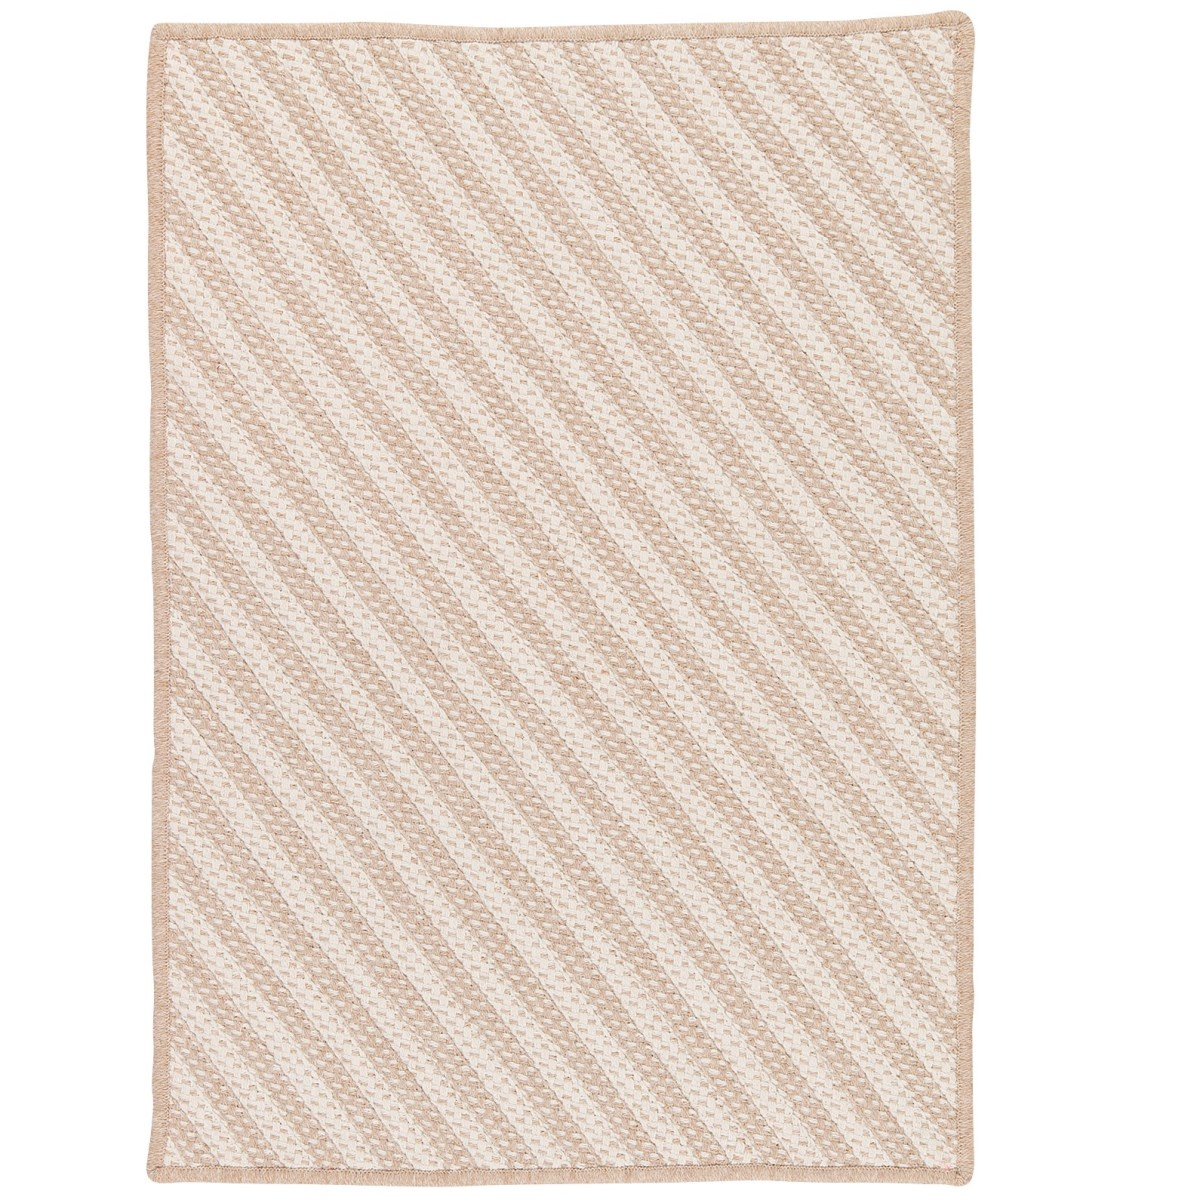 Blue Hill Natural Outdoor Braided Rectangular Rugs